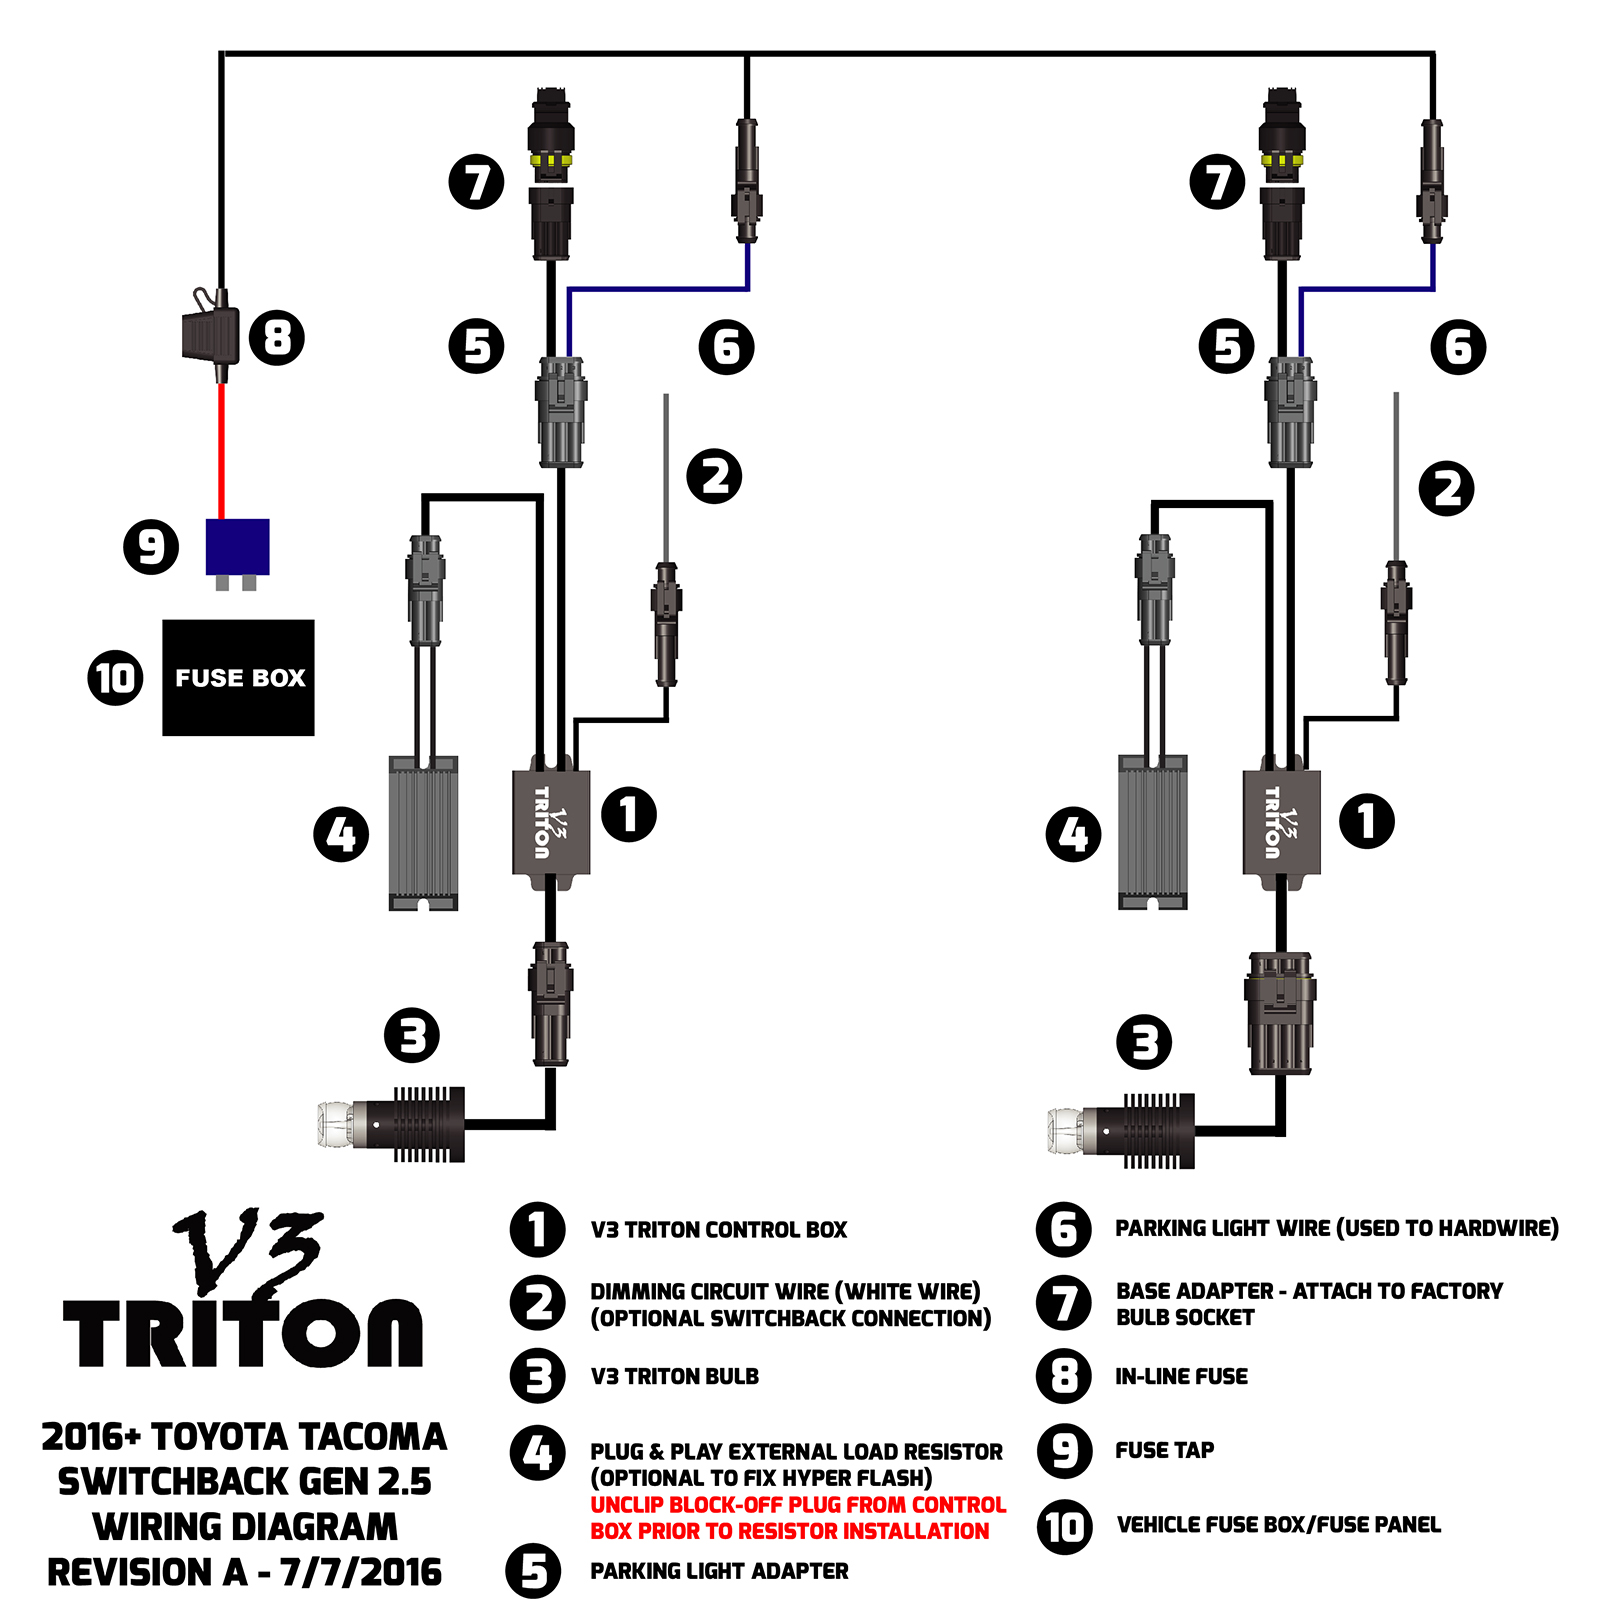 V3_Gen_2.5_A_Tacoma wiring diagrams 2016 tacoma wiring diagram at bakdesigns.co